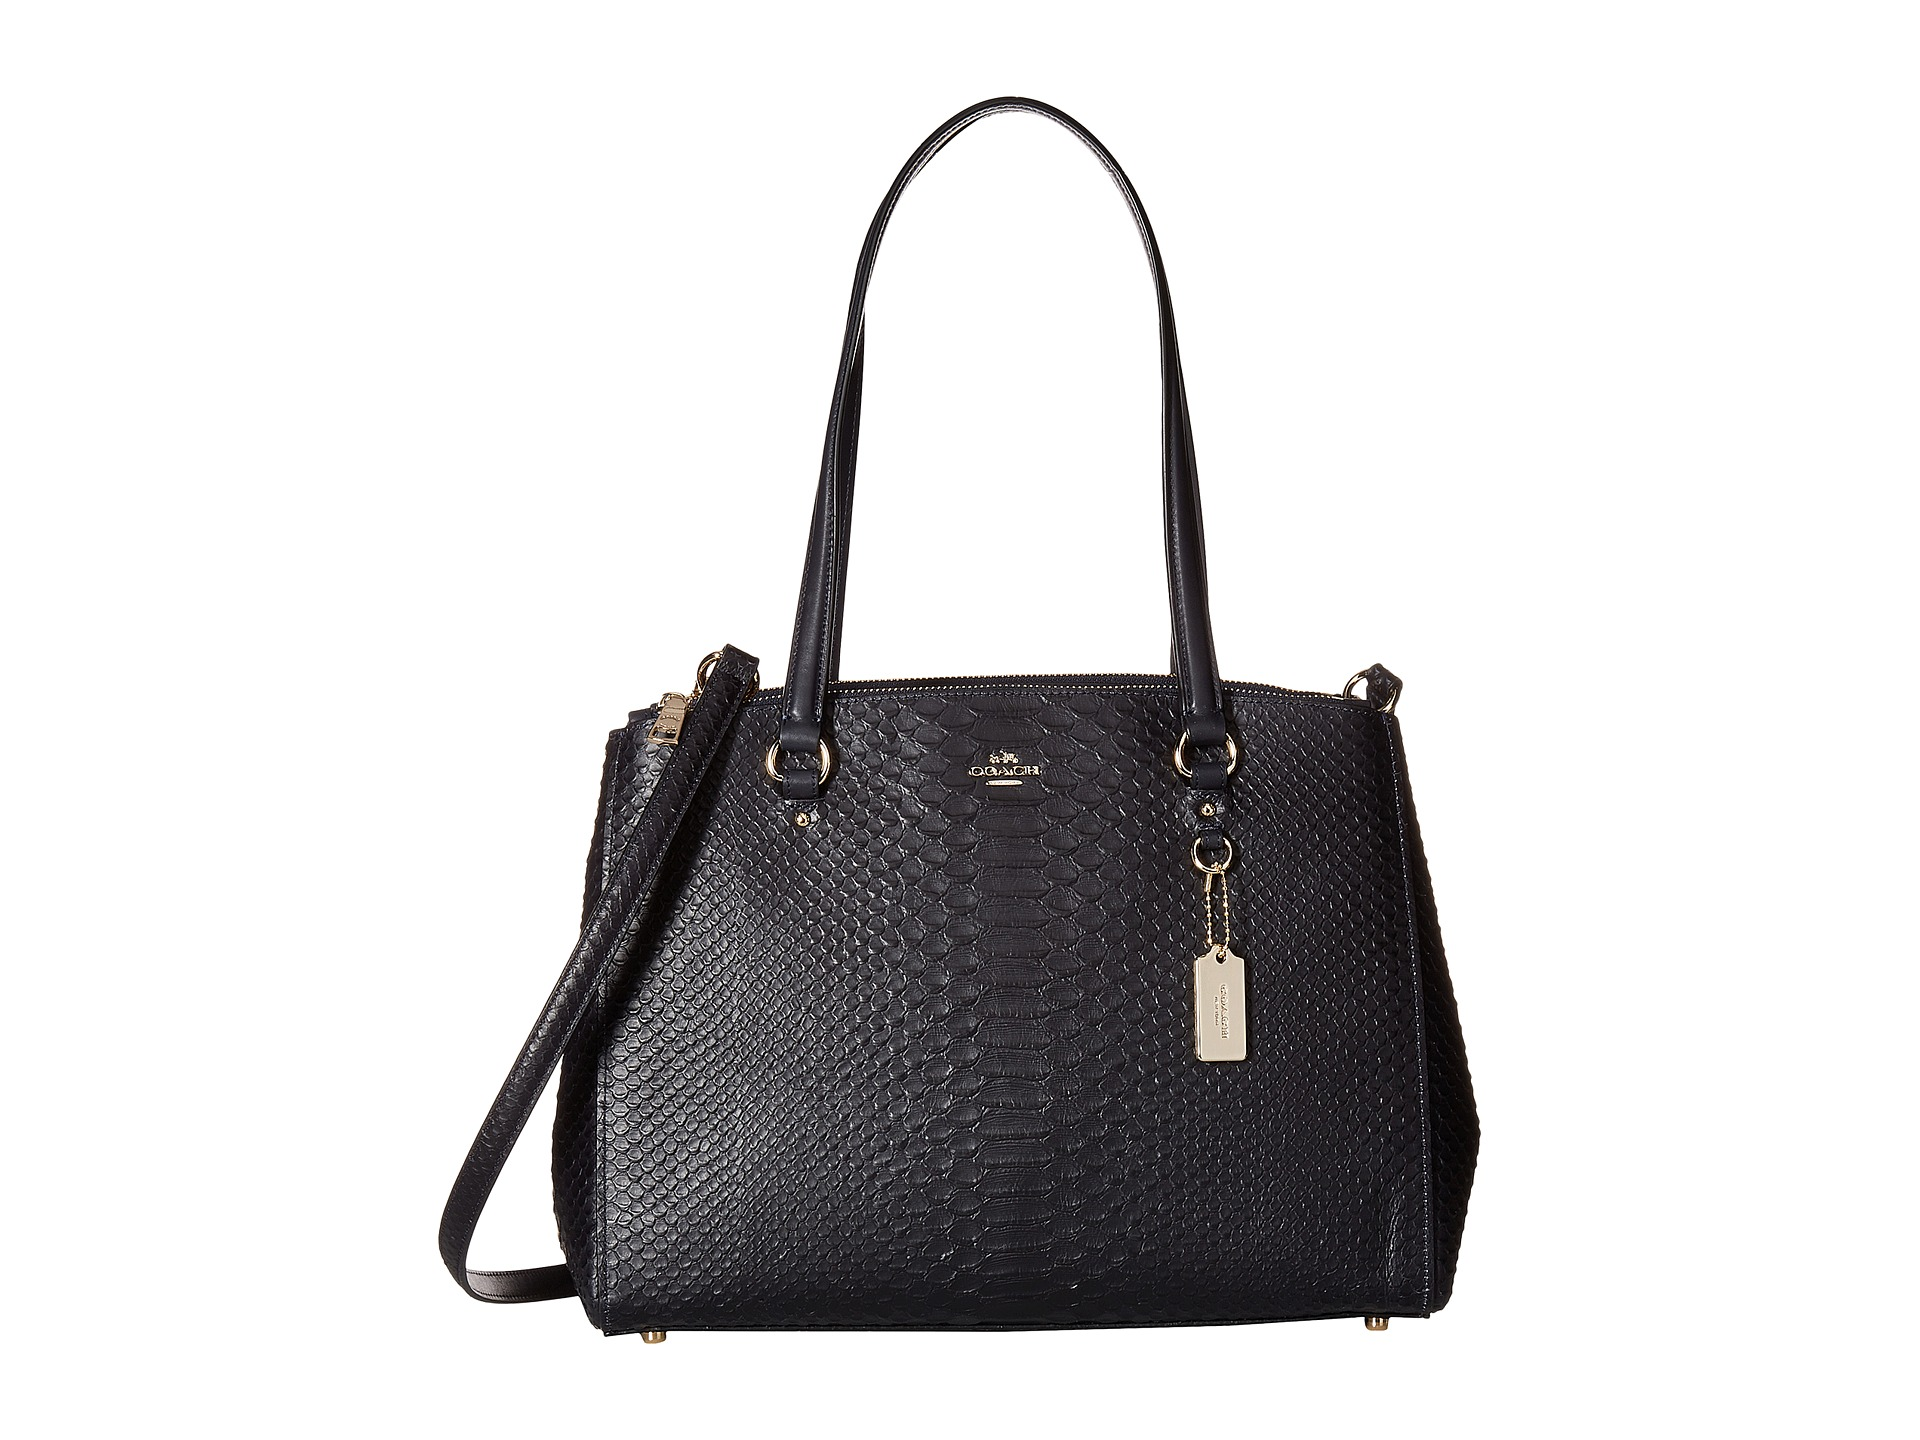 Up to 80% Off Coach @ 6pm + Free Shipping through 6/25 online deal